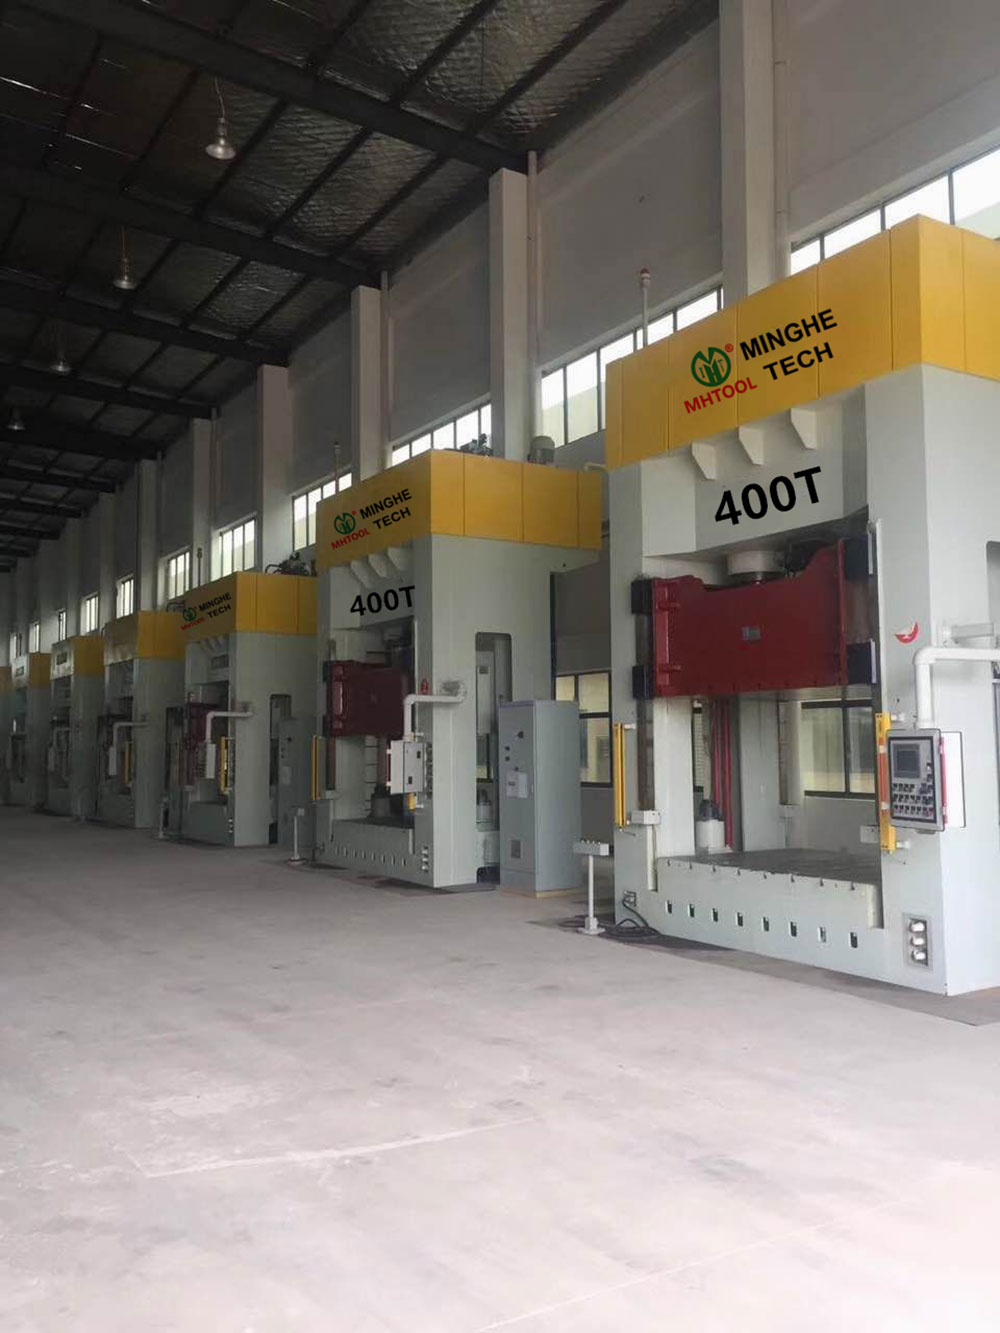 024-MingHe-Four-Column-Gantry-Stamping-Drawing-Hydraulic-Press-1-(6)400T